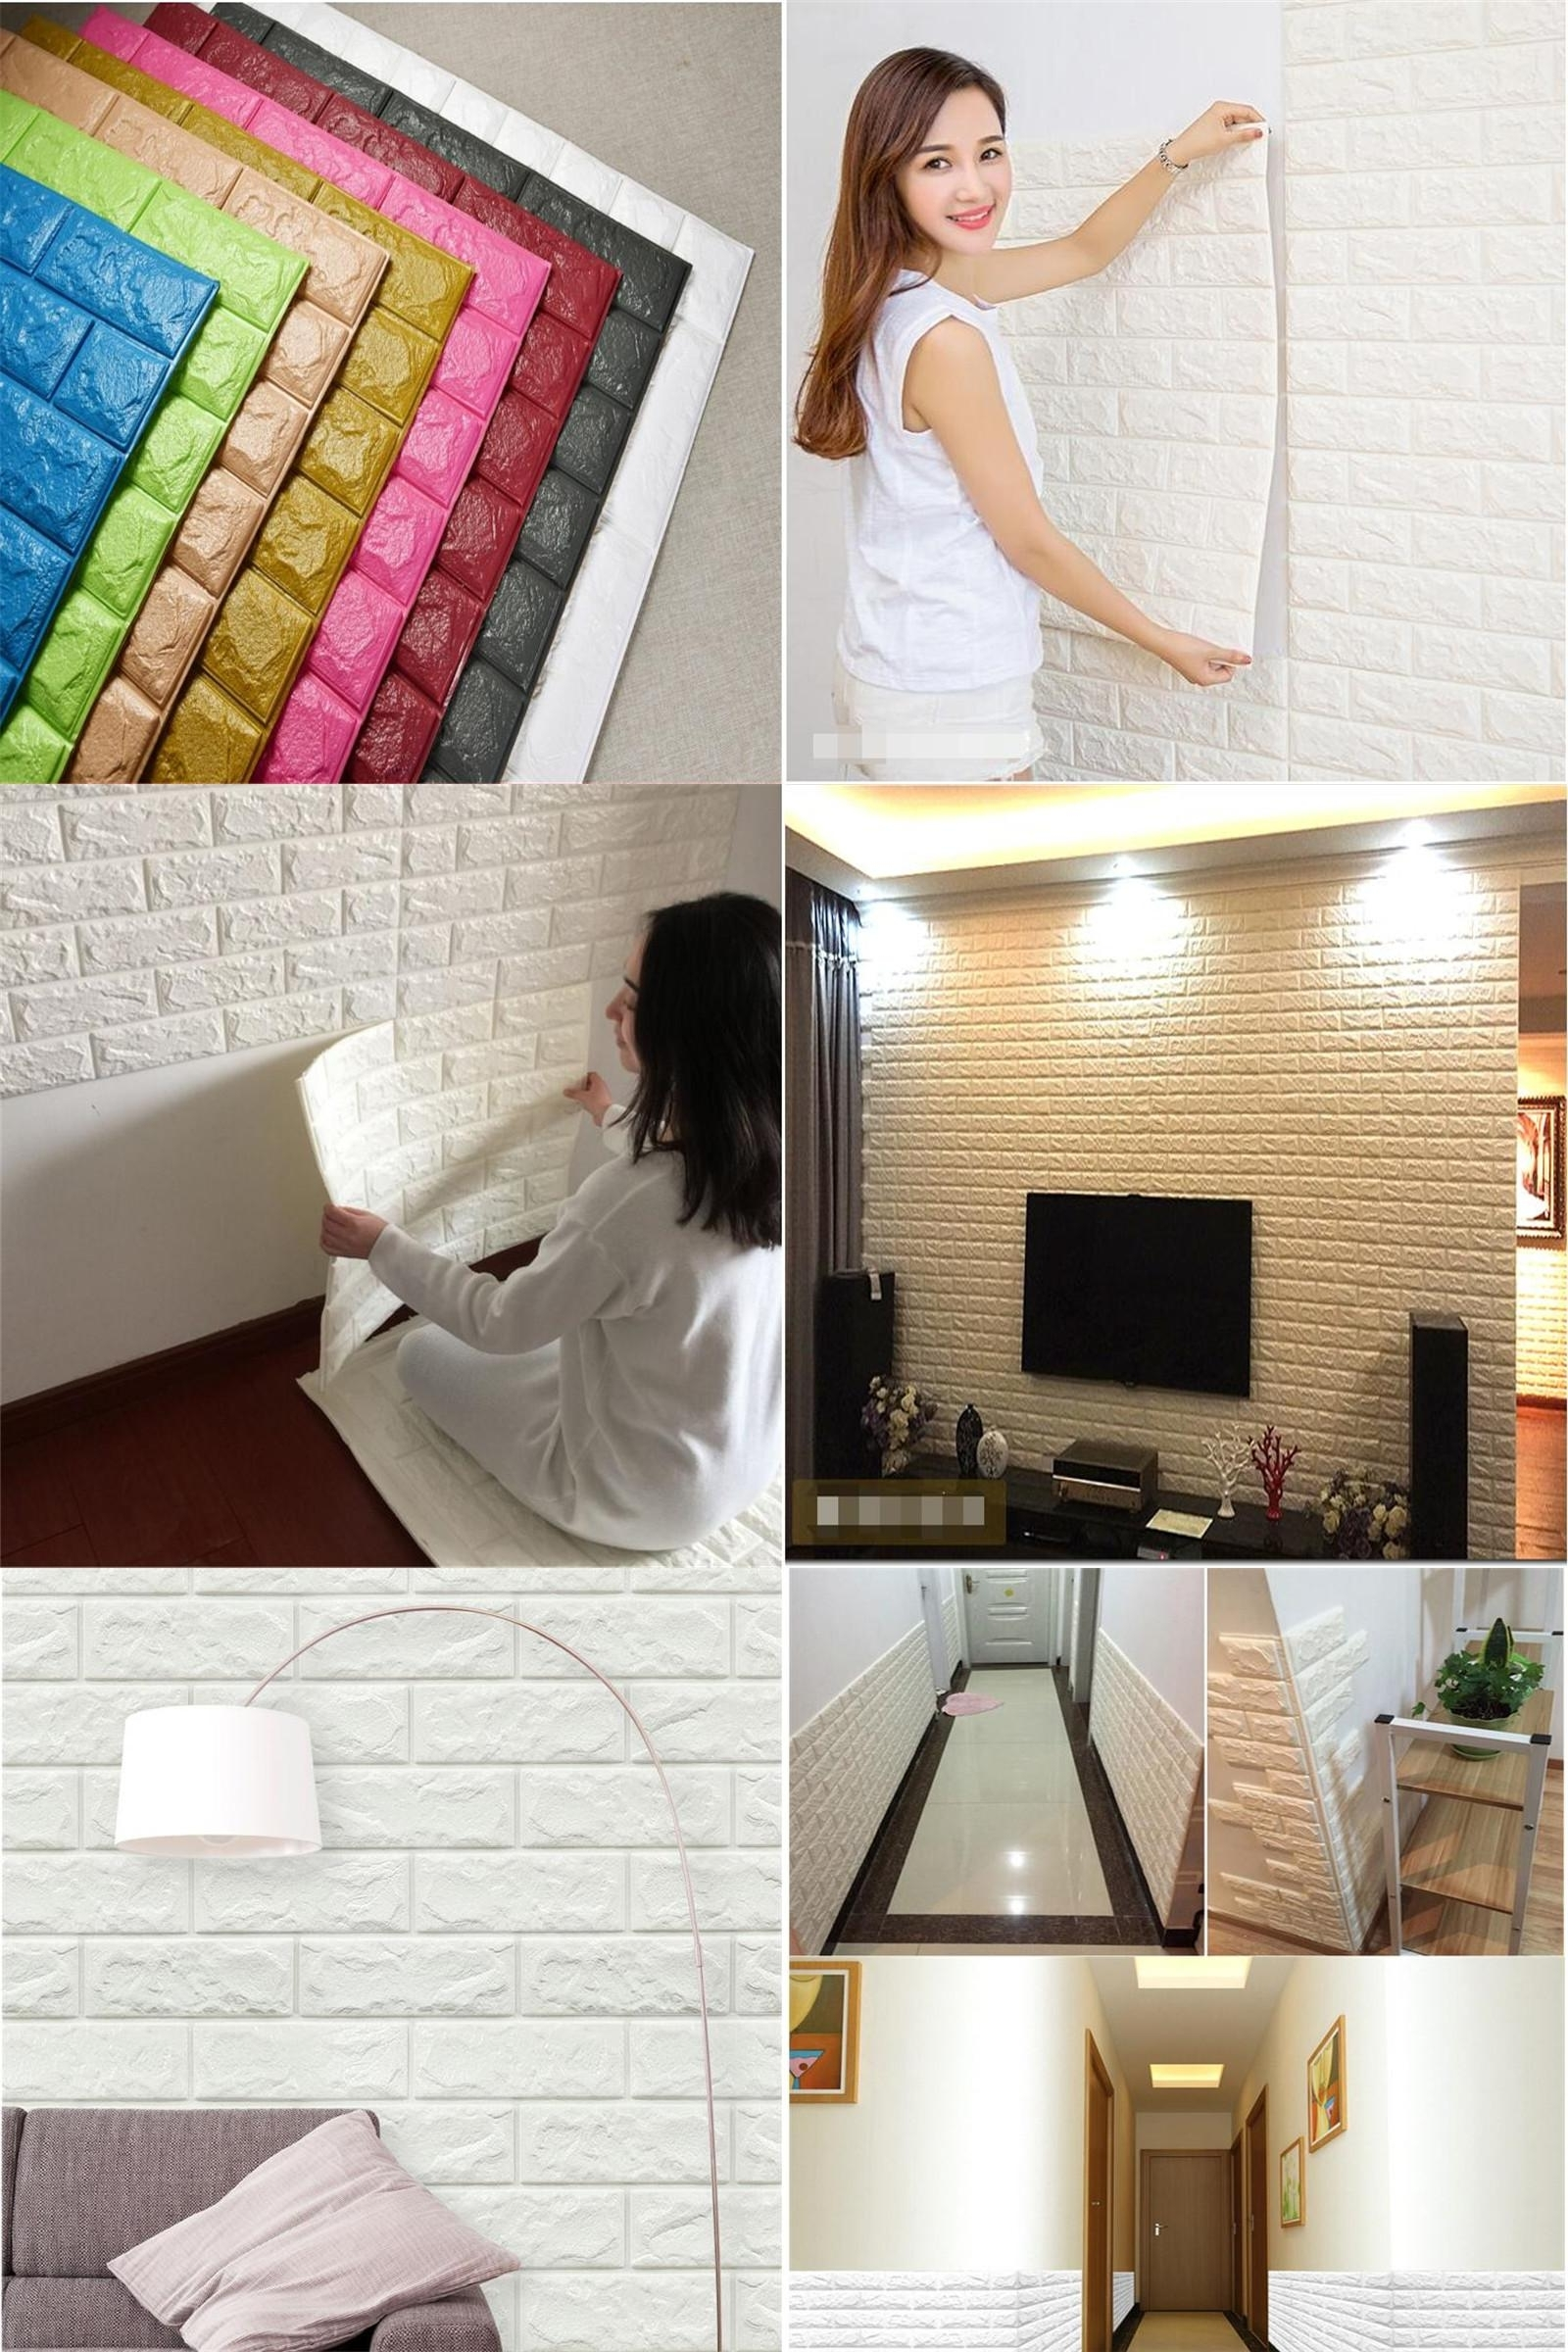 [%Visit To Buy] Diy 3D Wall Stickers Art Brick Self Adhesive Intended For Fashionable 3D Brick Wall Art|3D Brick Wall Art For Most Recently Released Visit To Buy] Diy 3D Wall Stickers Art Brick Self Adhesive|Best And Newest 3D Brick Wall Art With Visit To Buy] Diy 3D Wall Stickers Art Brick Self Adhesive|Newest Visit To Buy] Diy 3D Wall Stickers Art Brick Self Adhesive Throughout 3D Brick Wall Art%] (View 1 of 15)